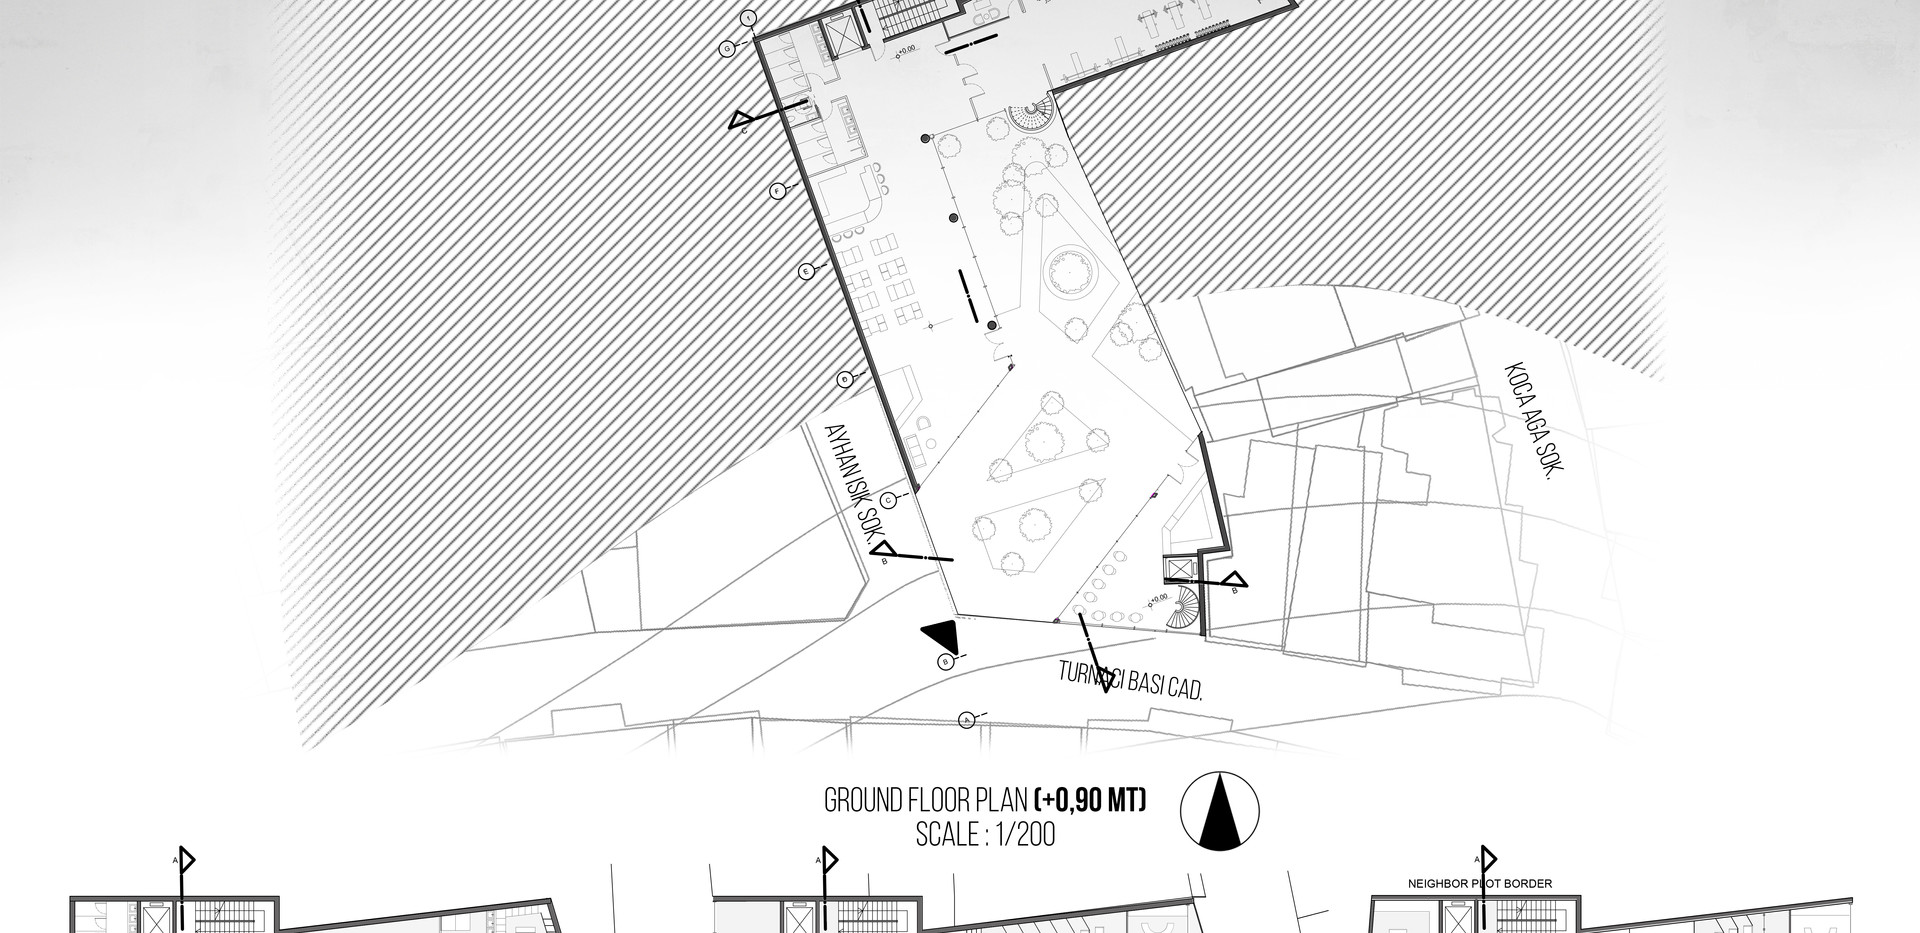 Section and plan drawings